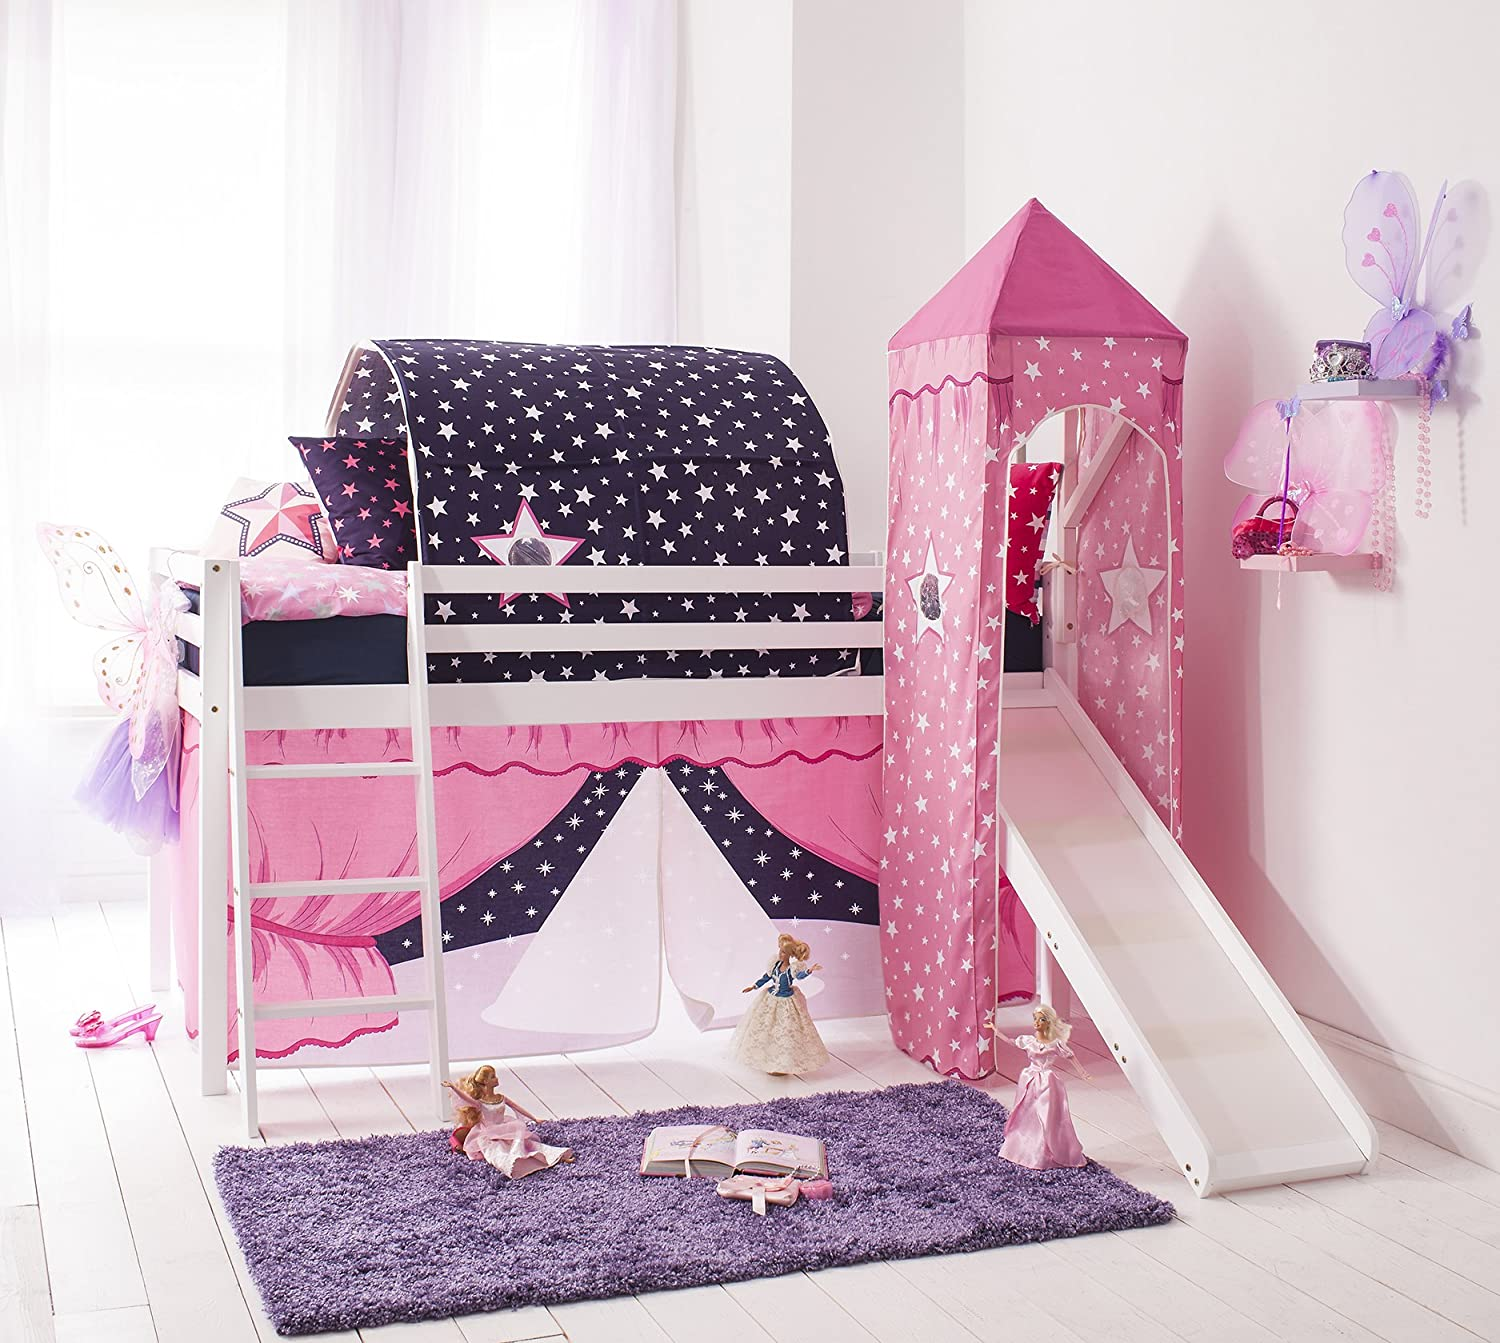 Noa and Nani Cabin Bed Mid Sleeper ShowTime in White with Tower & Tent Showtime